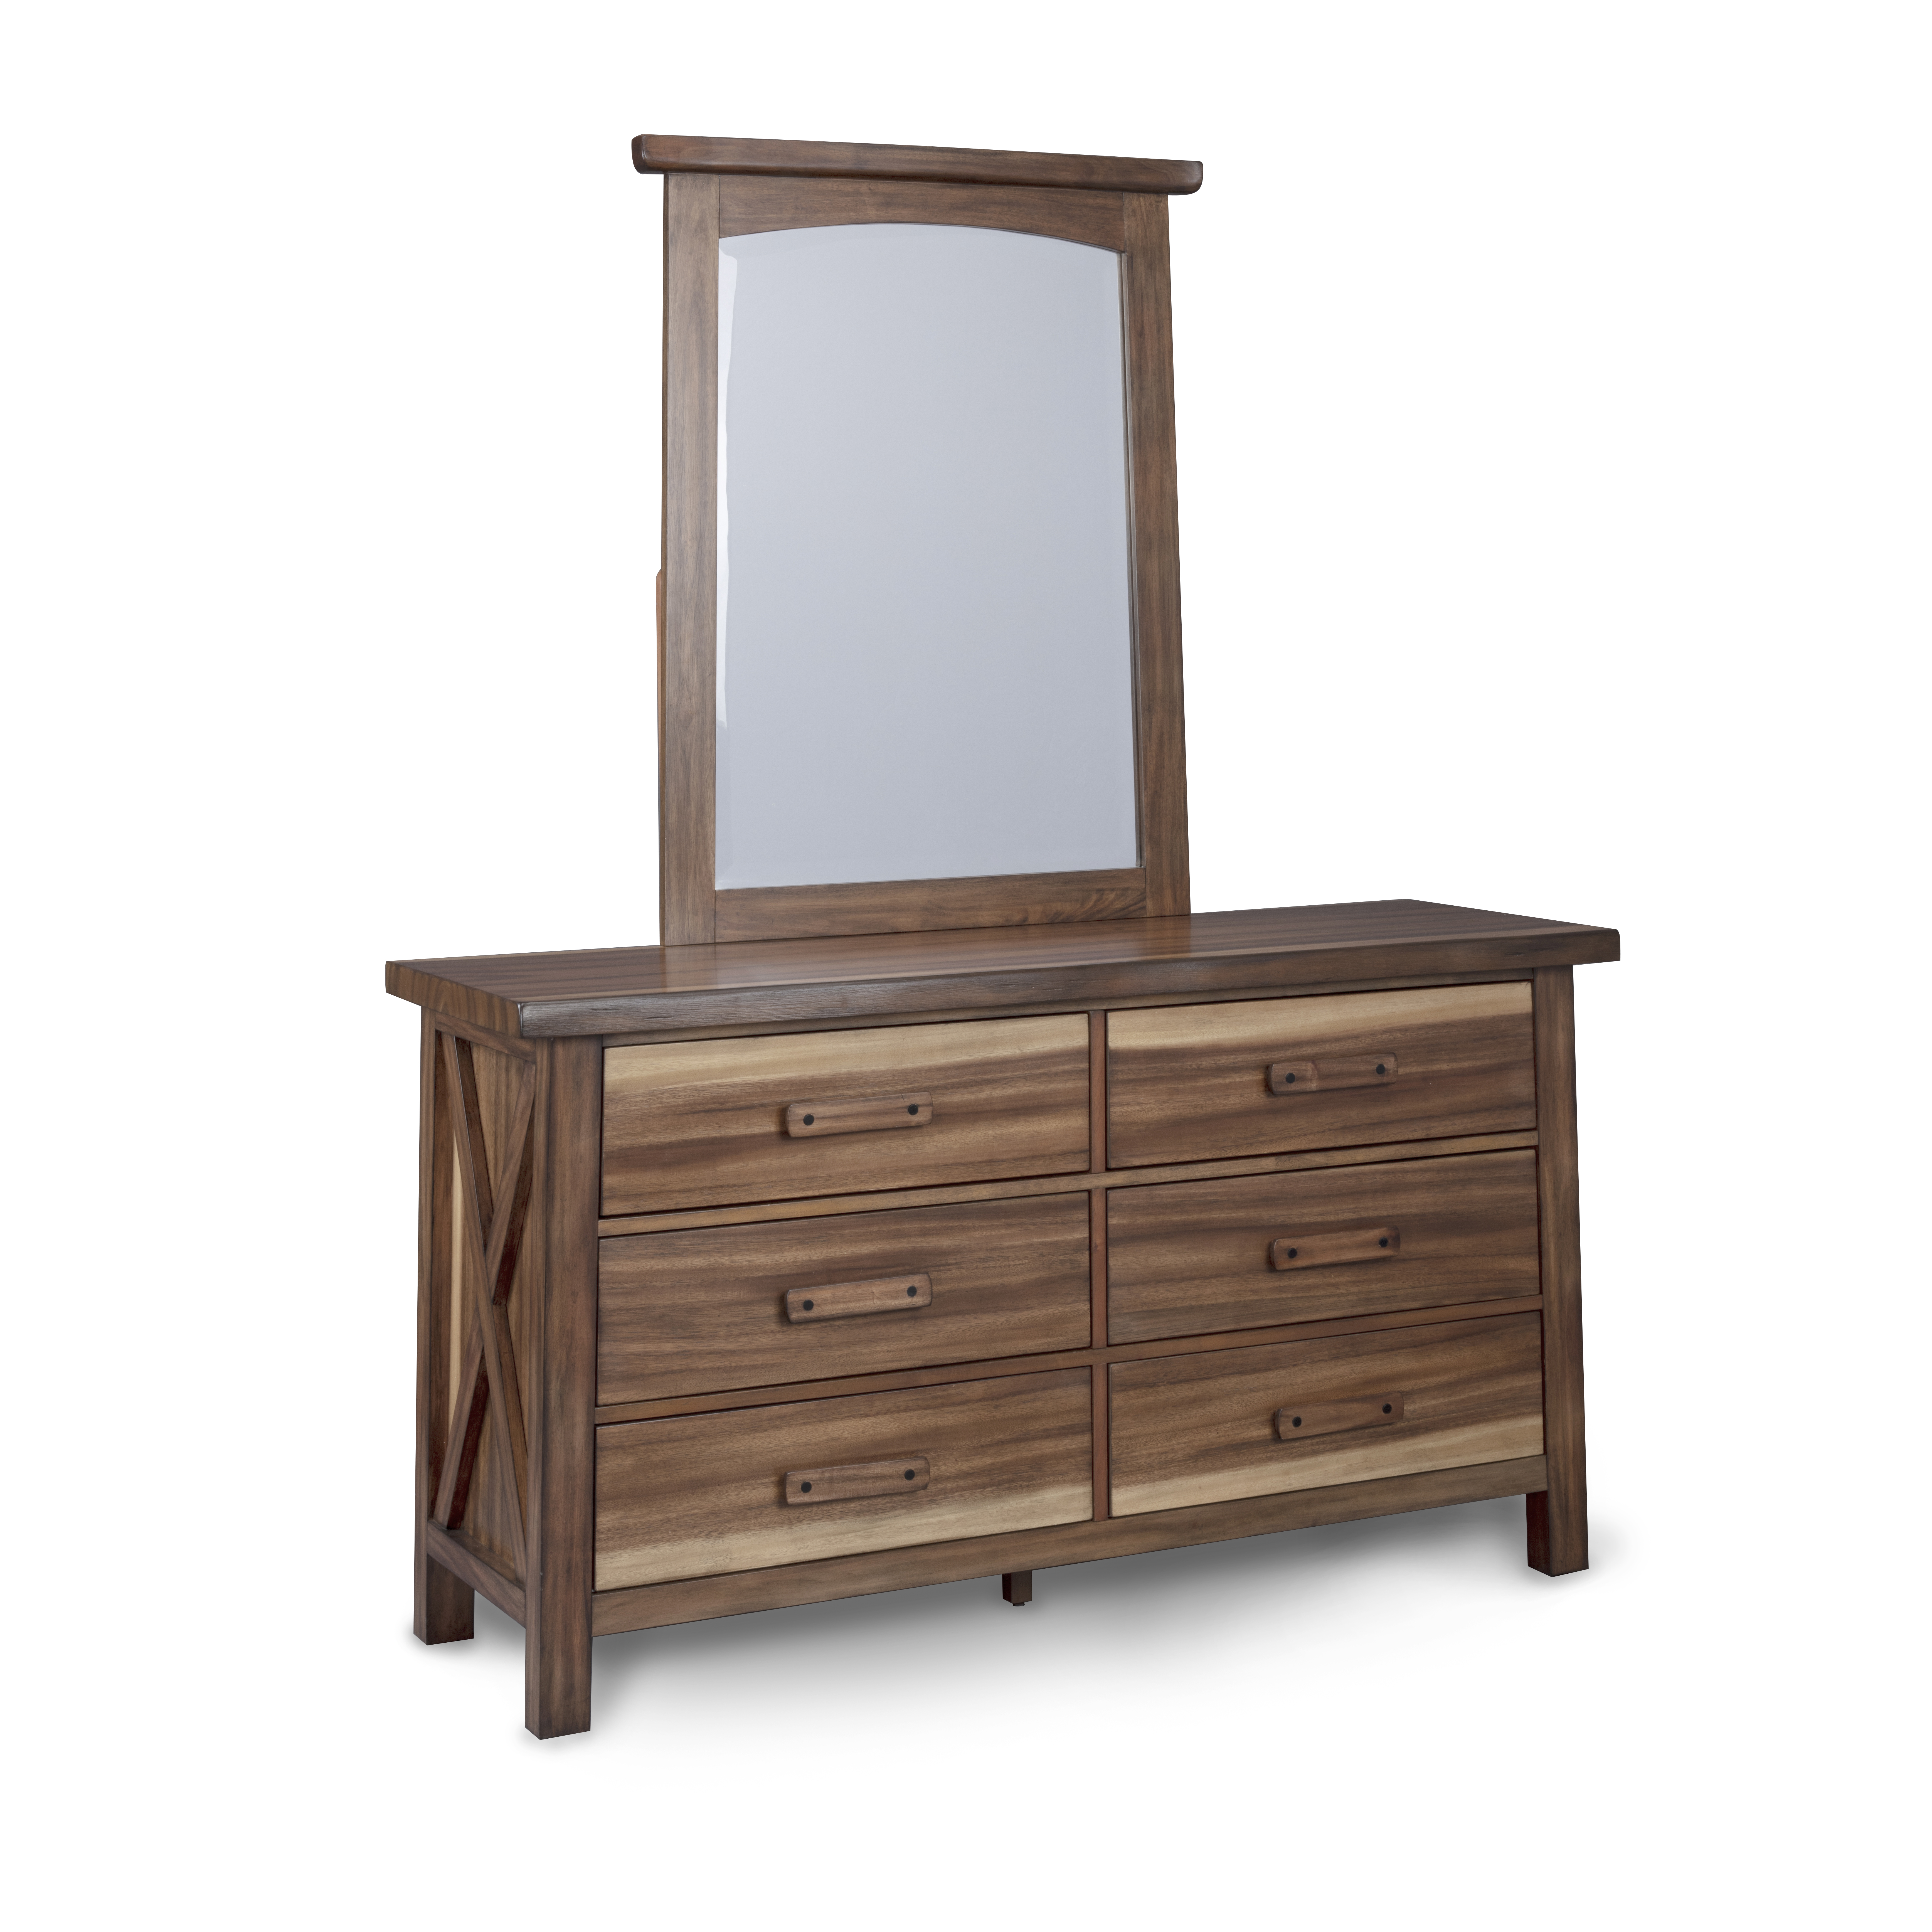 Forest Retreat Dresser and Mirror by homestyles at Godby Home Furnishings